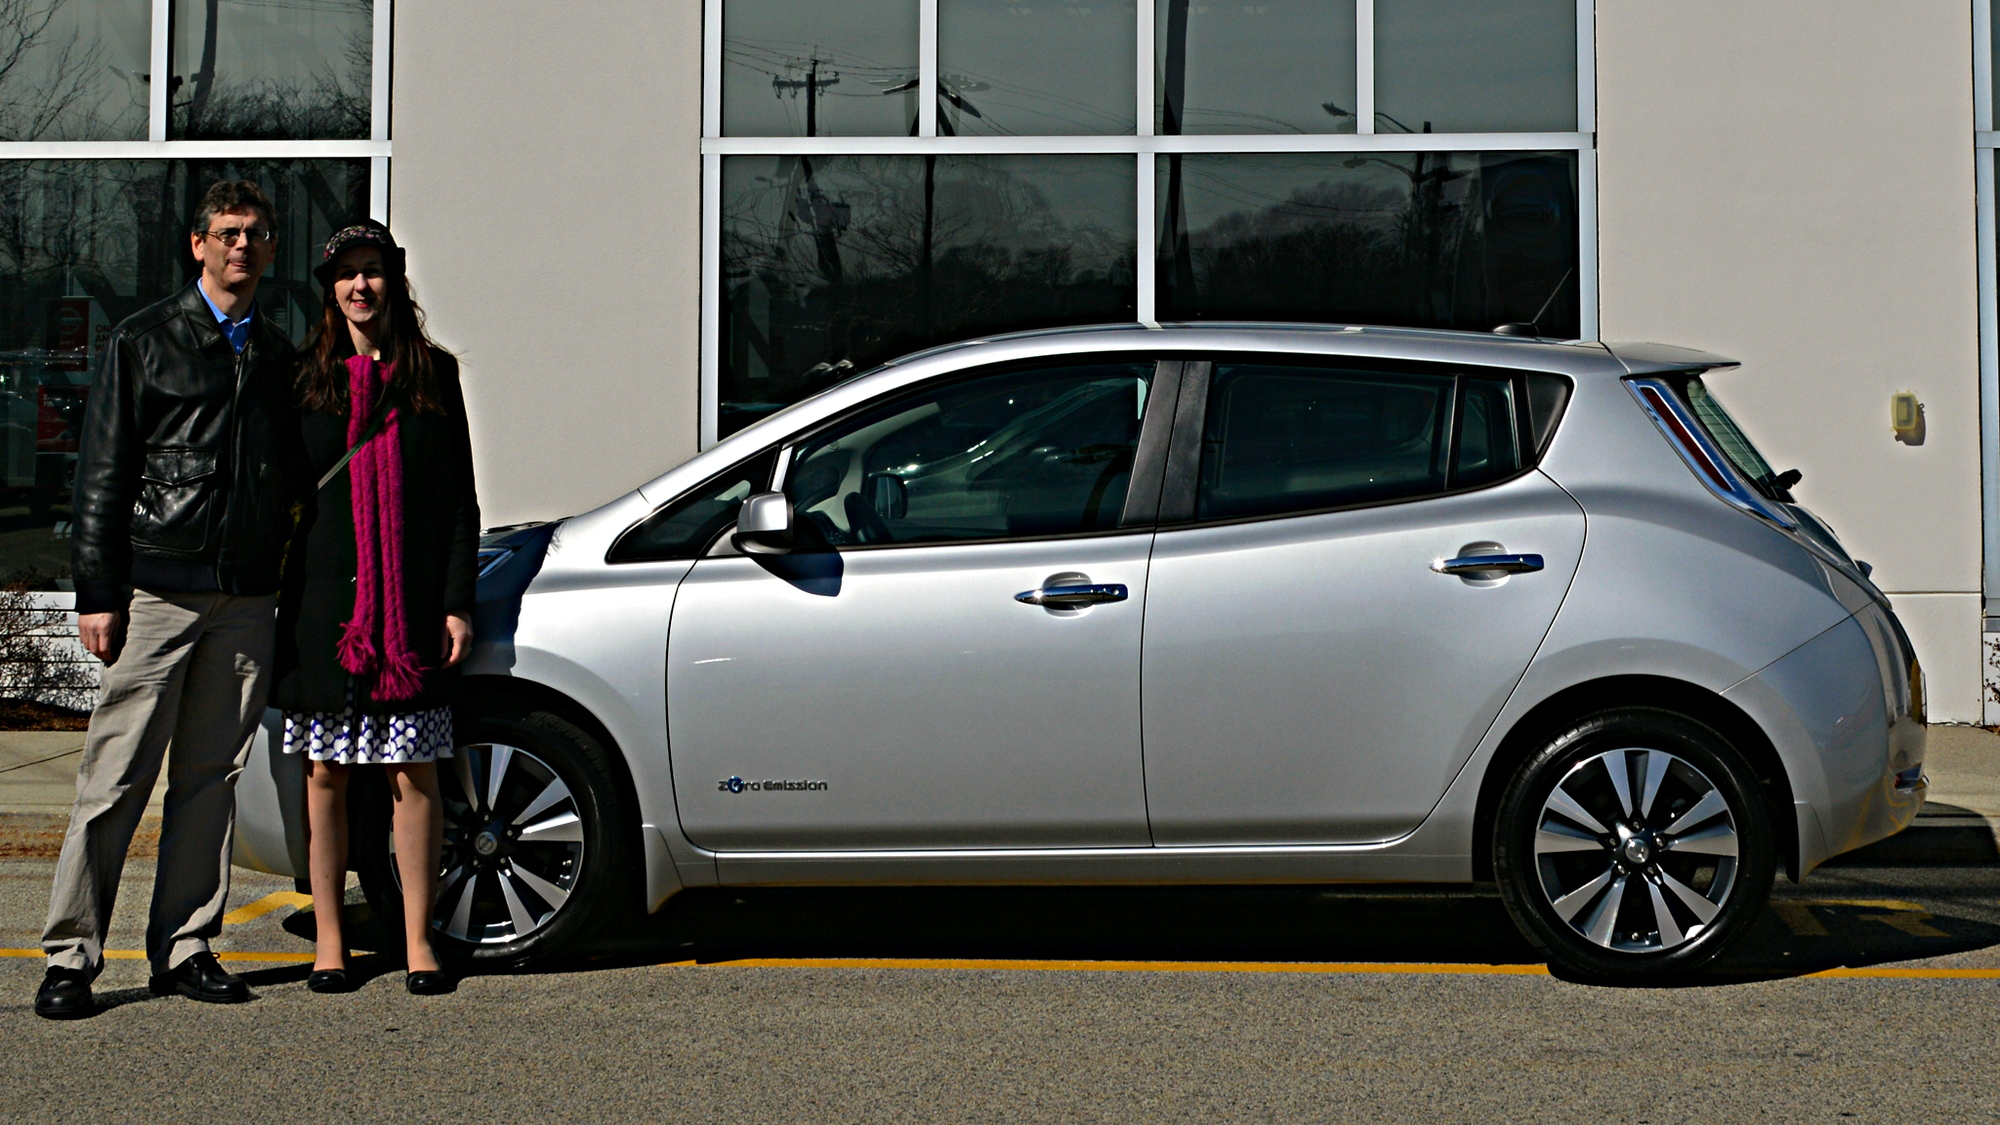 2015 Nissan Leaf at Quirk Nissan, Quincy, MA   [photo: John C. Briggs]